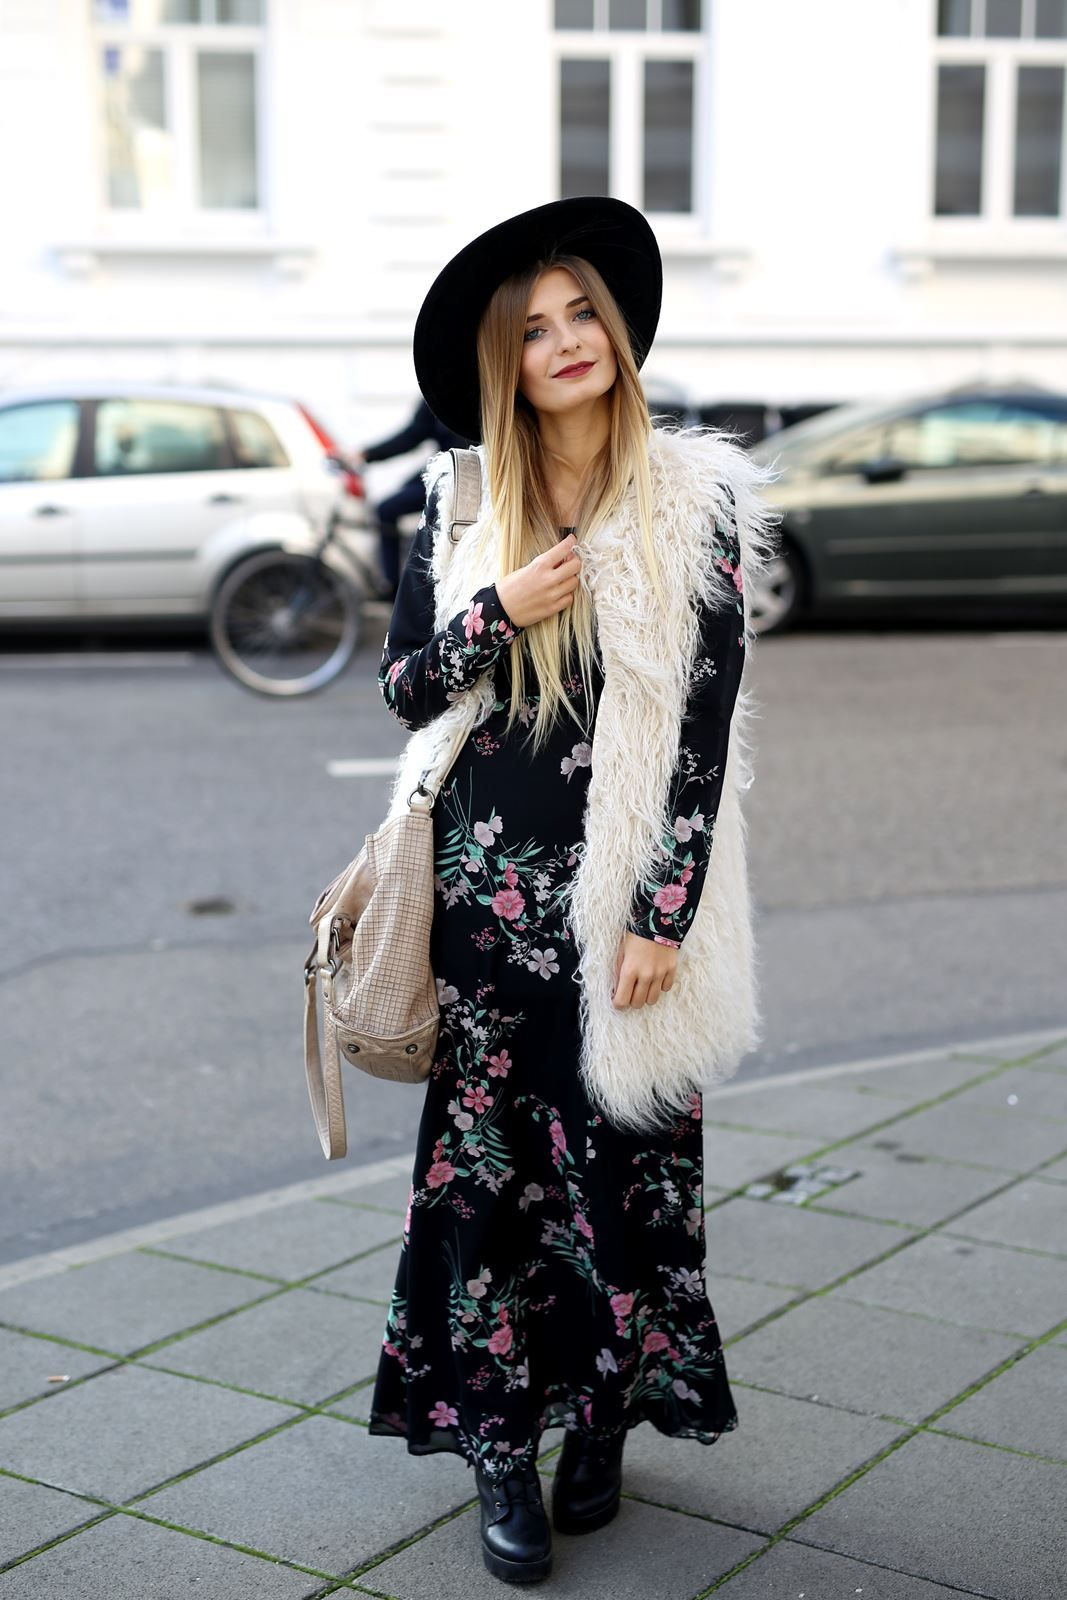 Outfit: Ready for Winter   Modestil, Boho kleidung